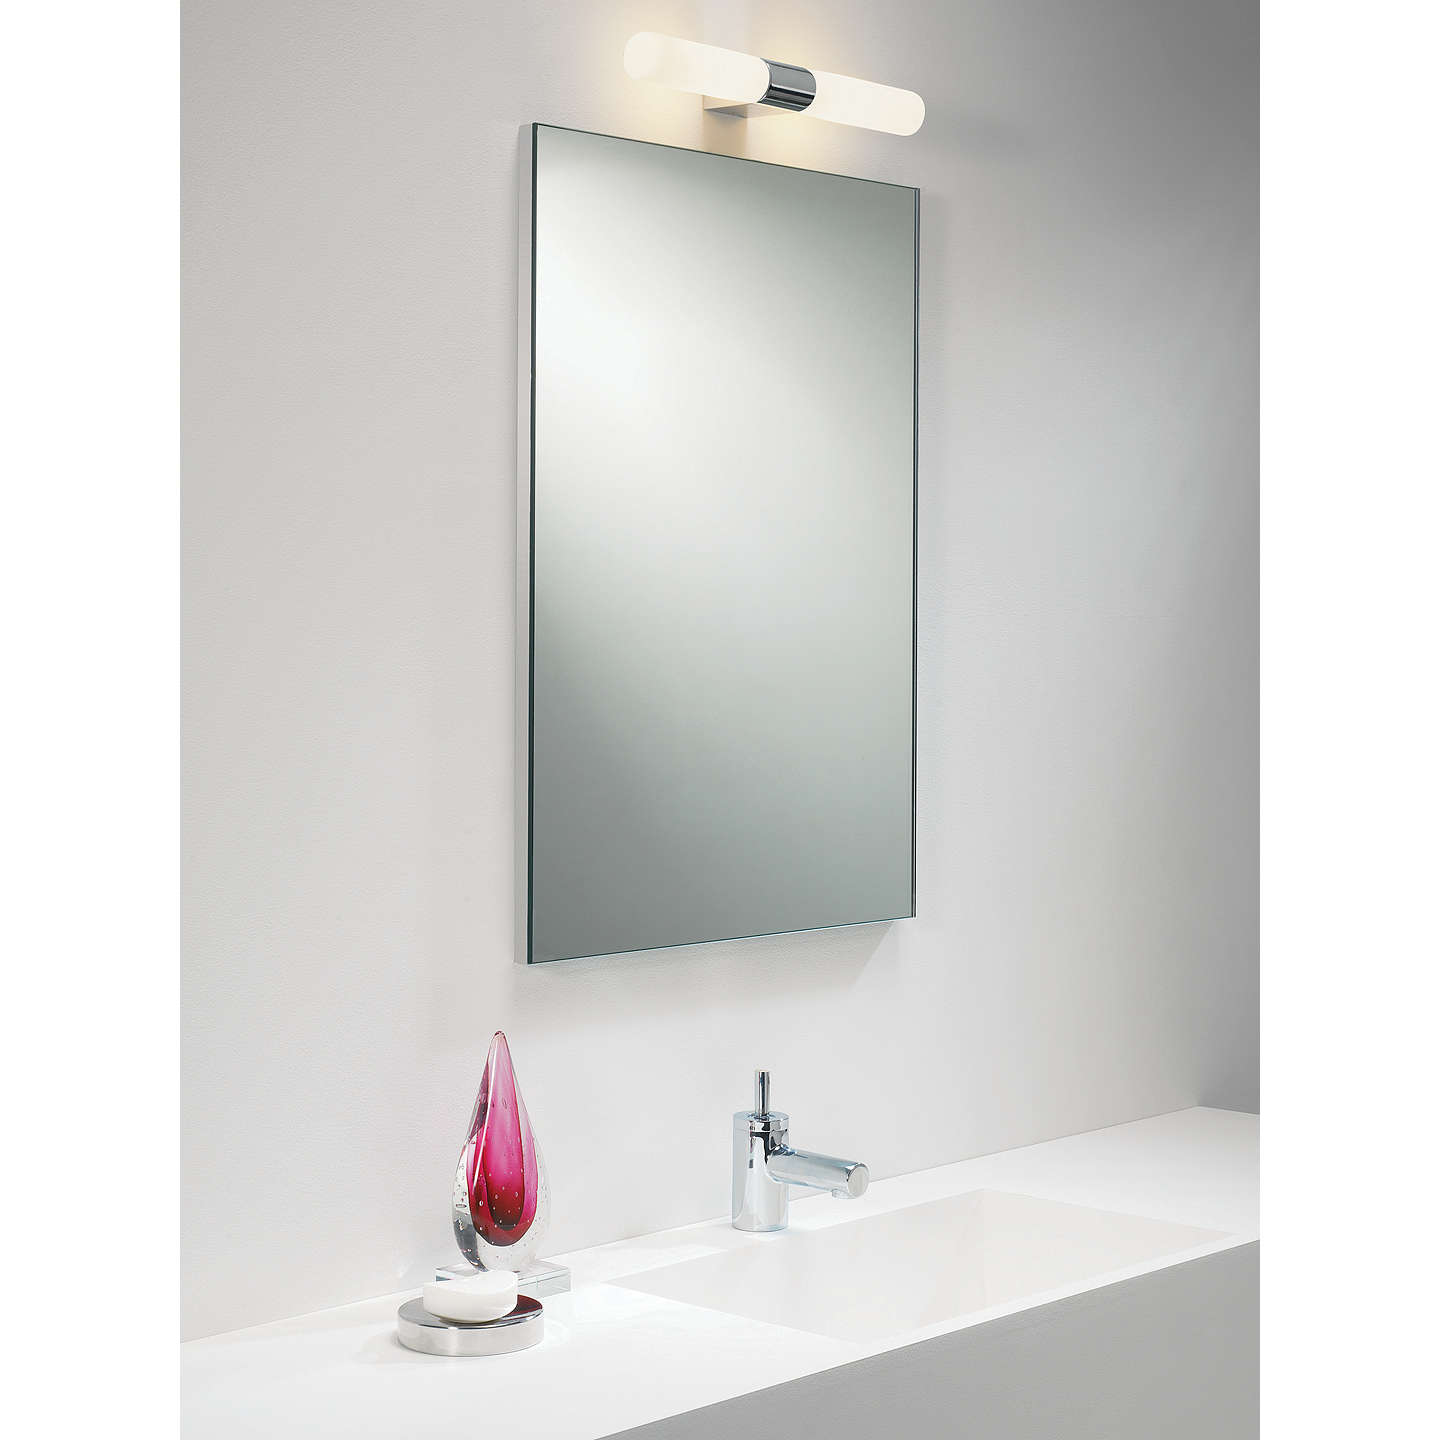 astro padova over mirror bathroom light at john lewis. Black Bedroom Furniture Sets. Home Design Ideas